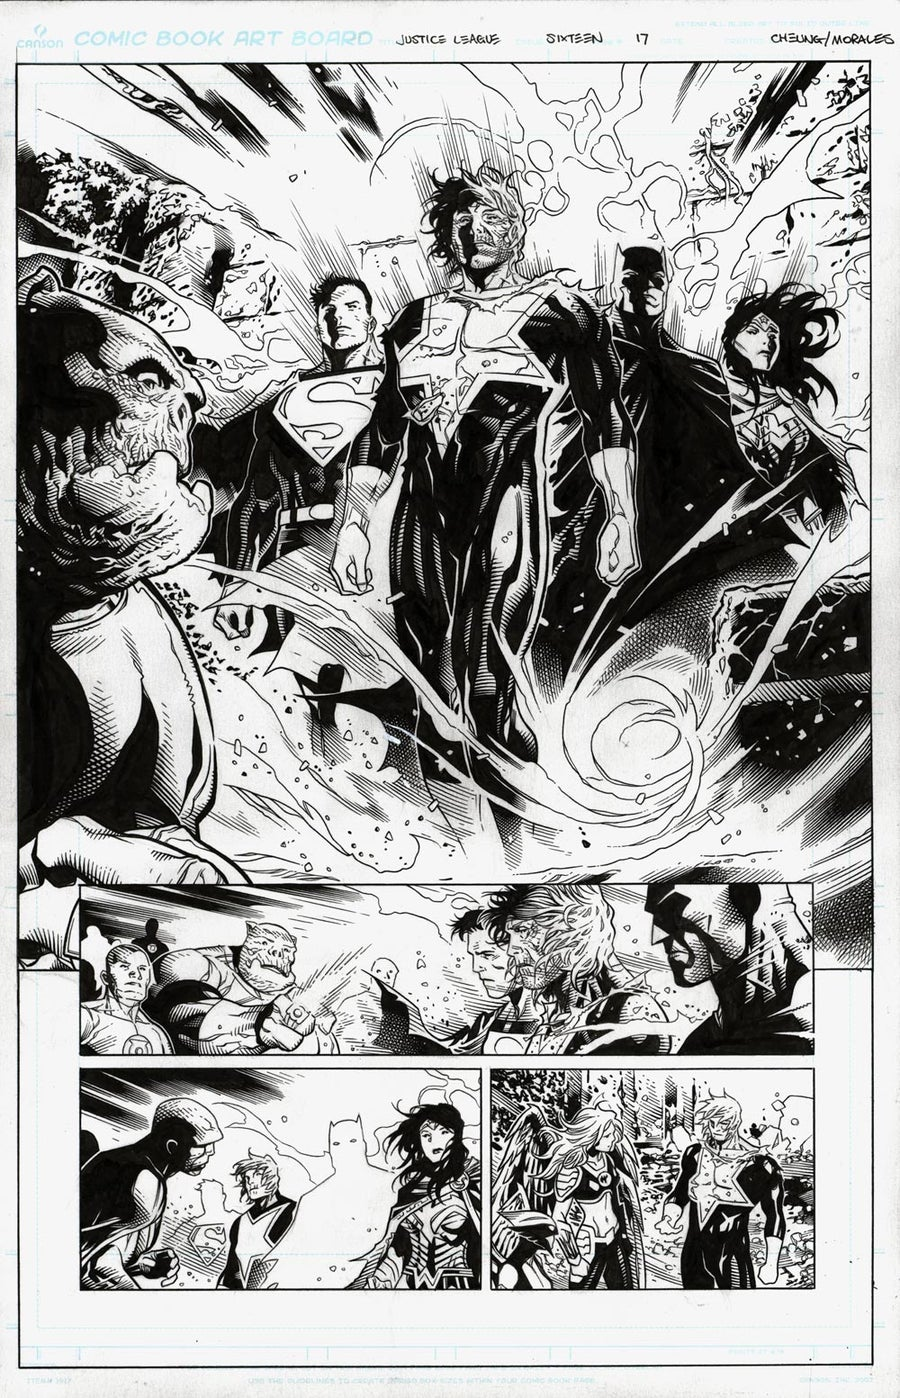 Image of JUSTICE LEAGUE #16_17